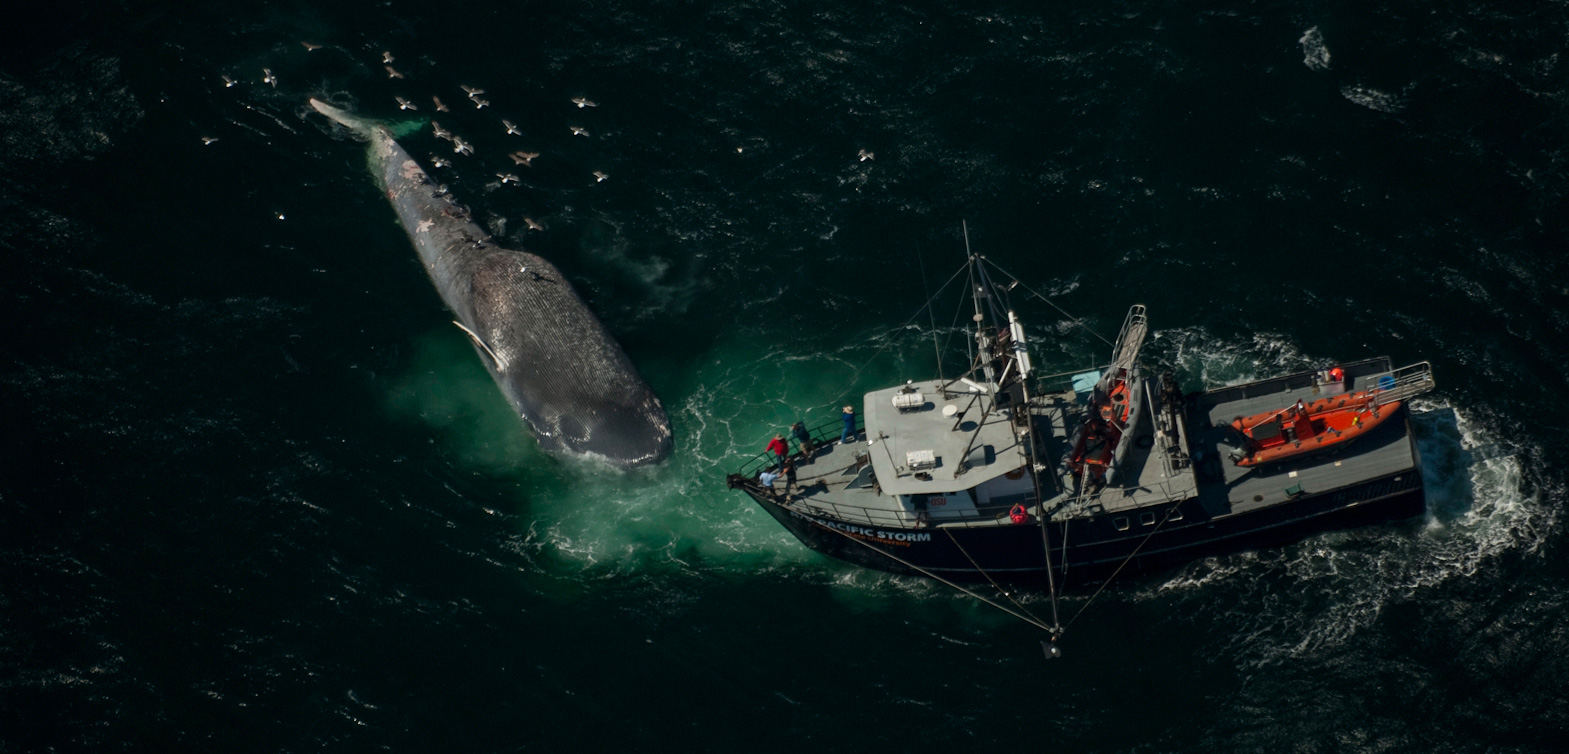 dead blue whale and research vessel from above